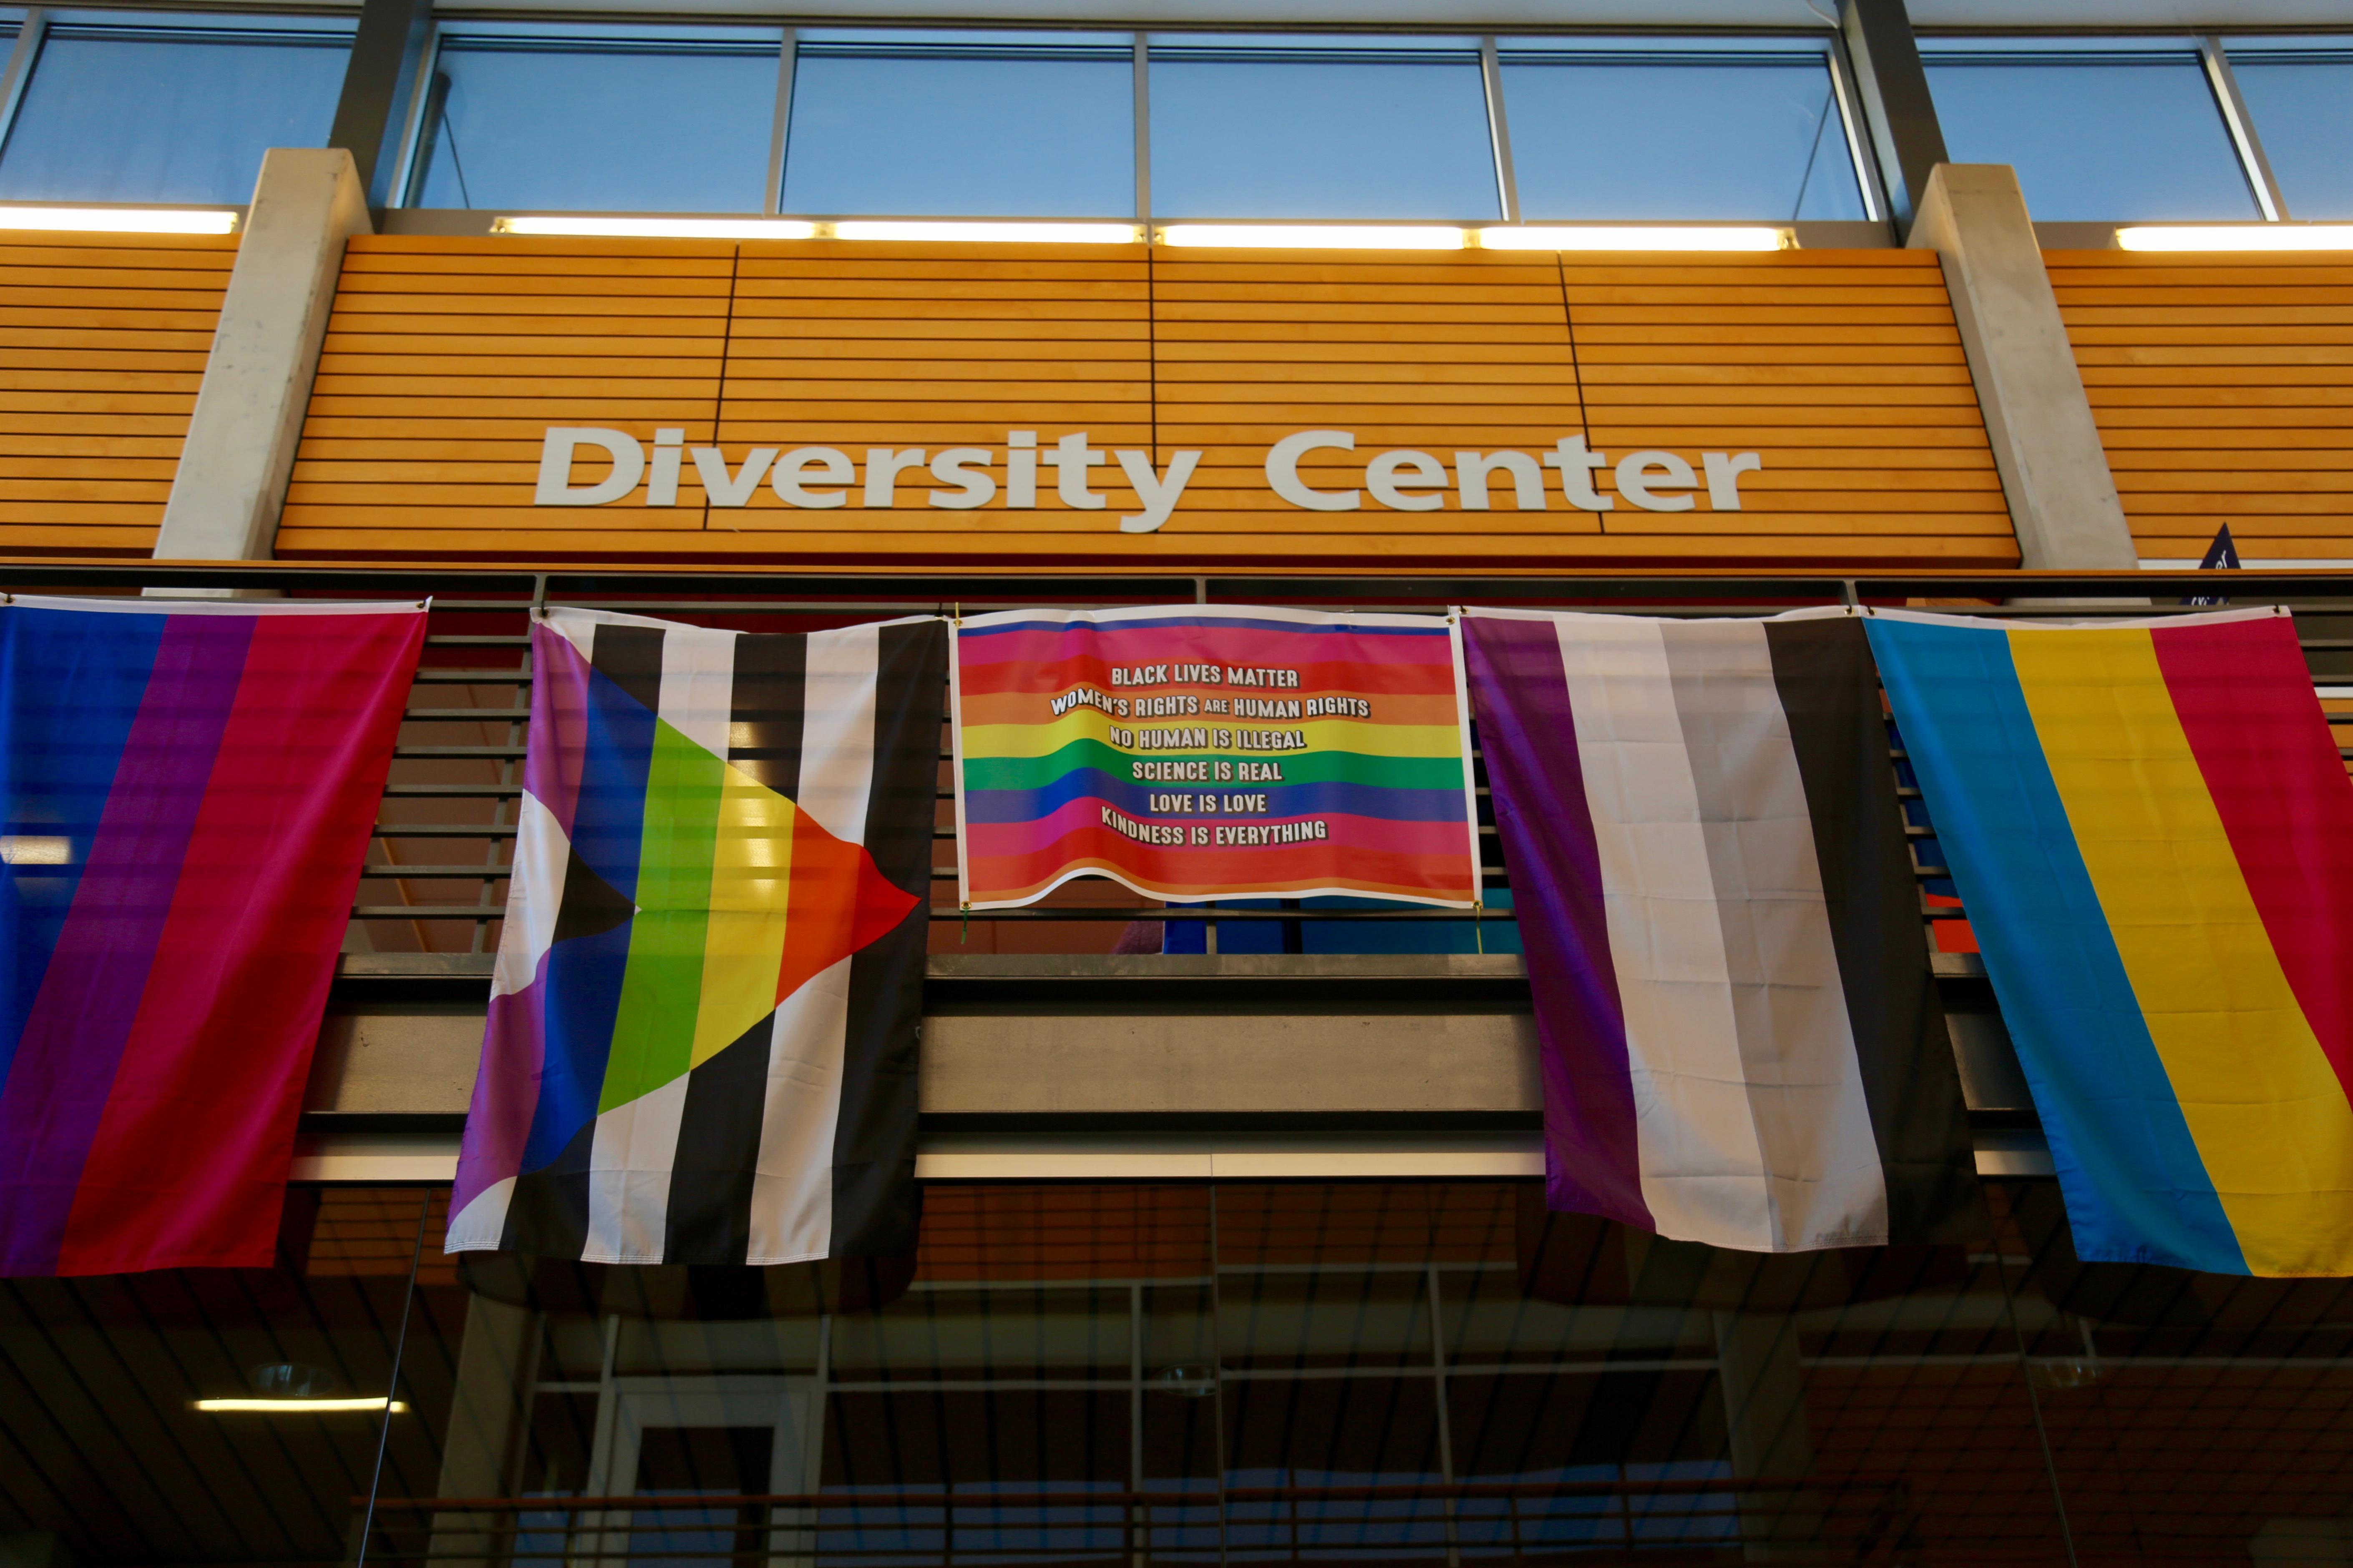 Clark College opened its diversity center in 2012. Recently, the center has experienced high staff turnover.